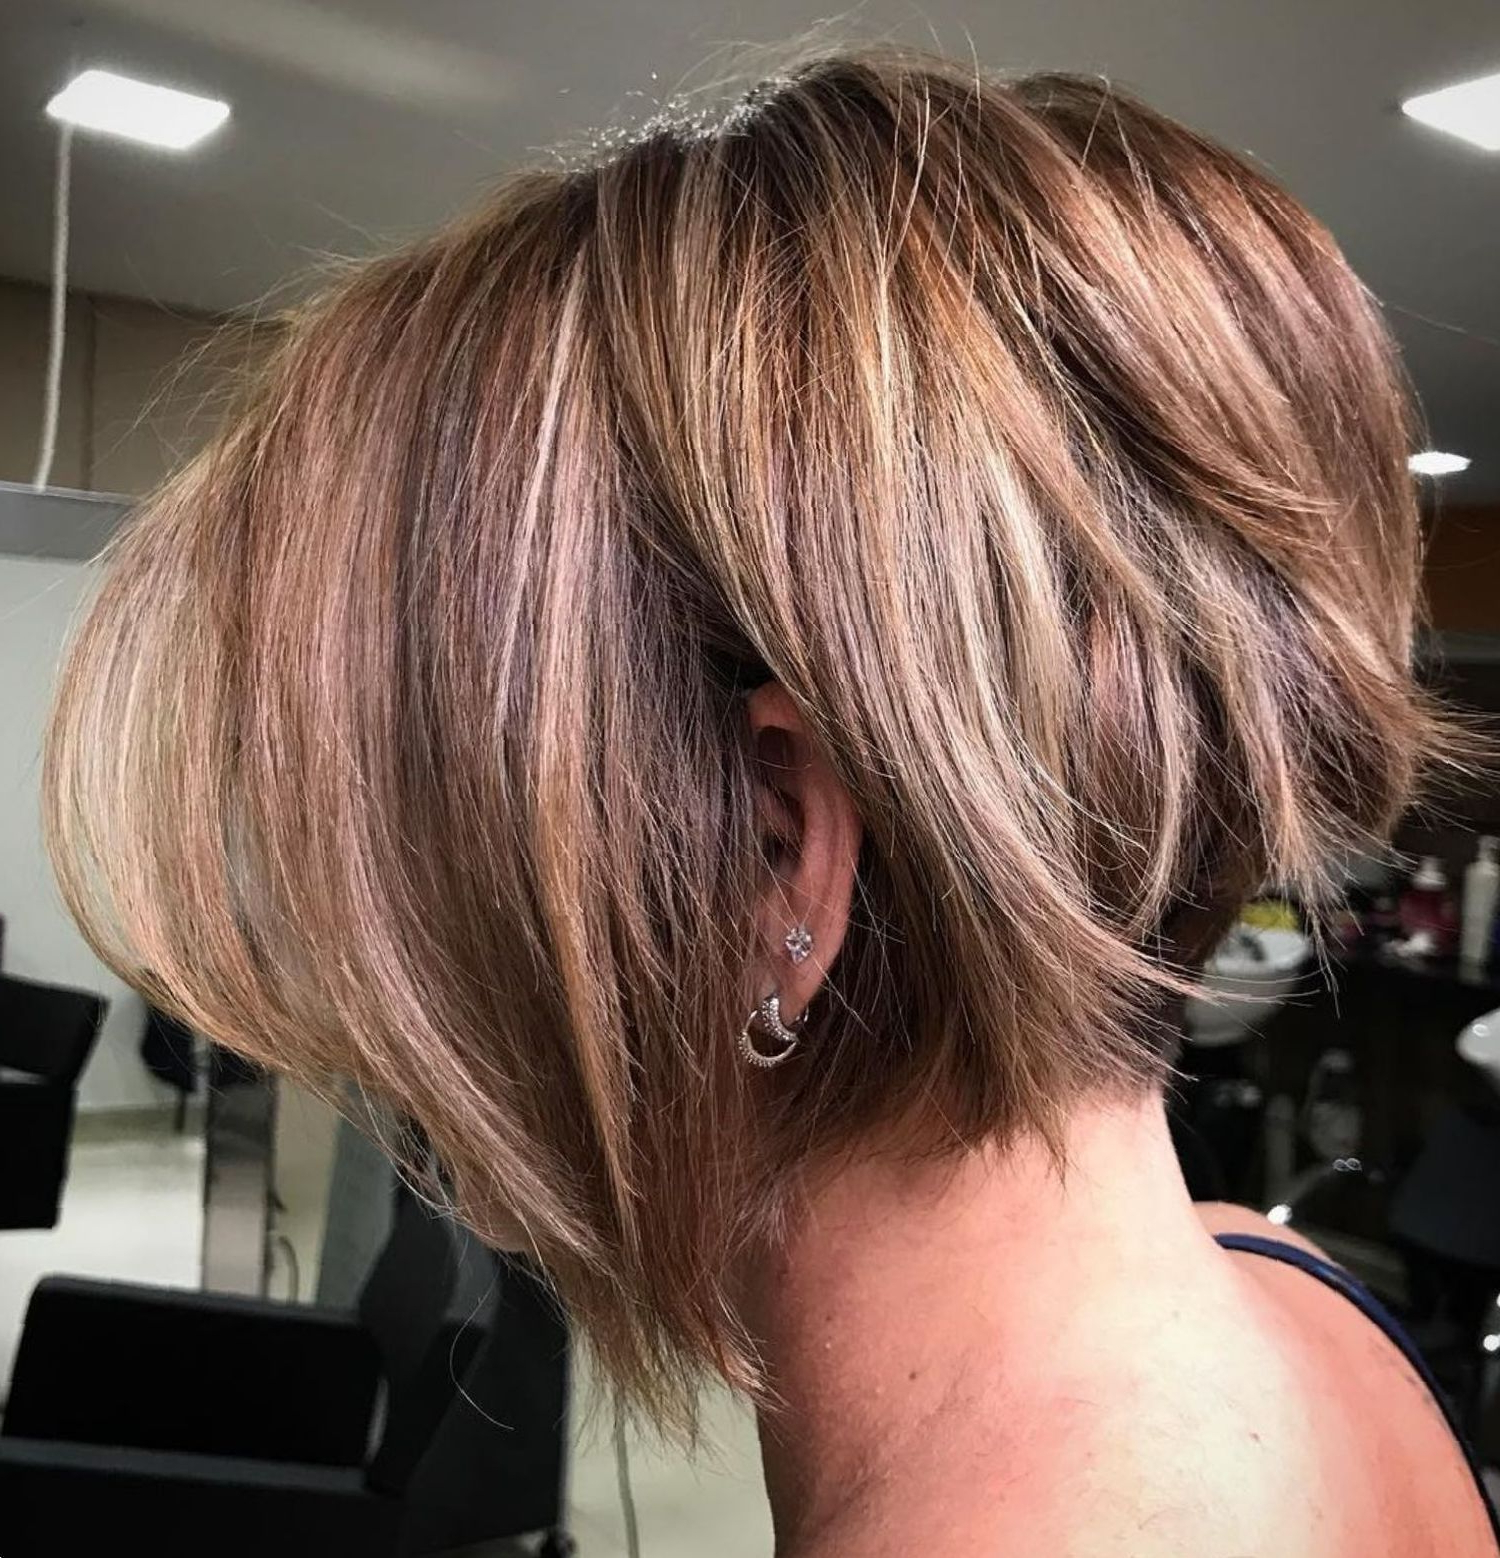 Pin On Hair Regarding Current Very Short Stacked Bob Hairstyles With Messy Finish (View 13 of 20)